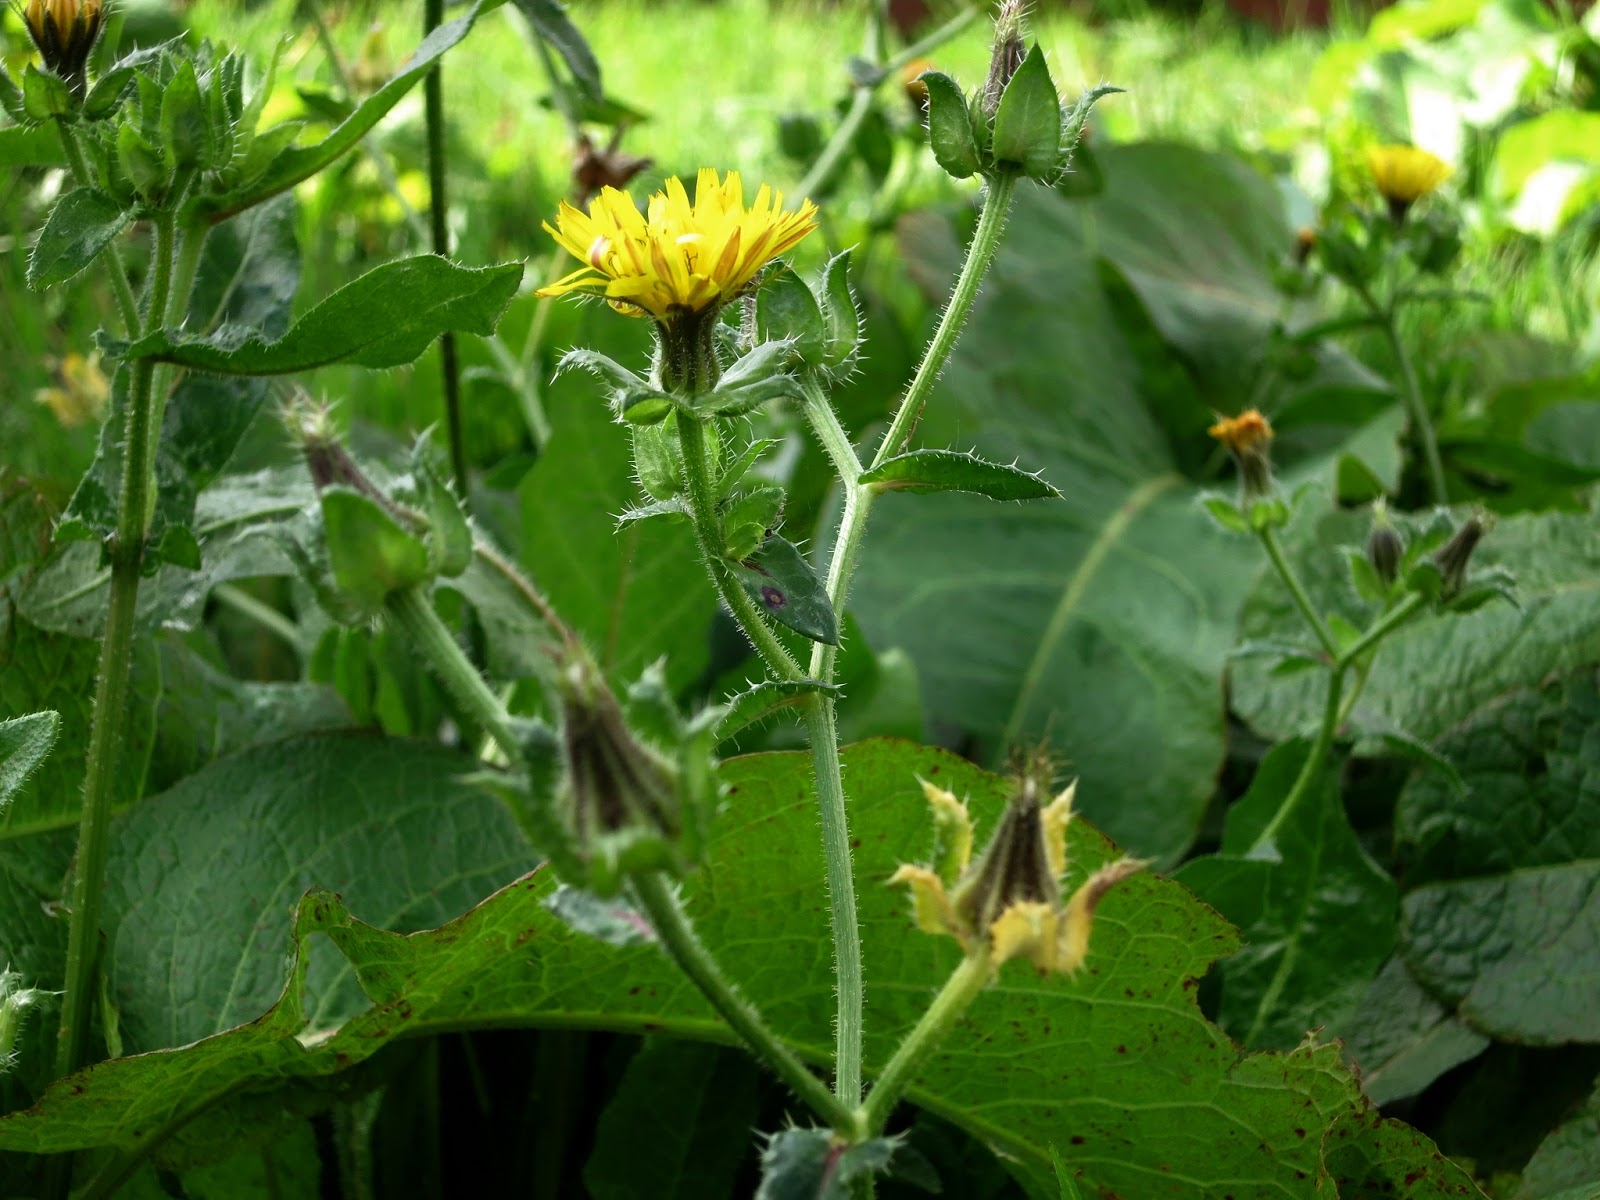 Yellow flower with prickly leaves